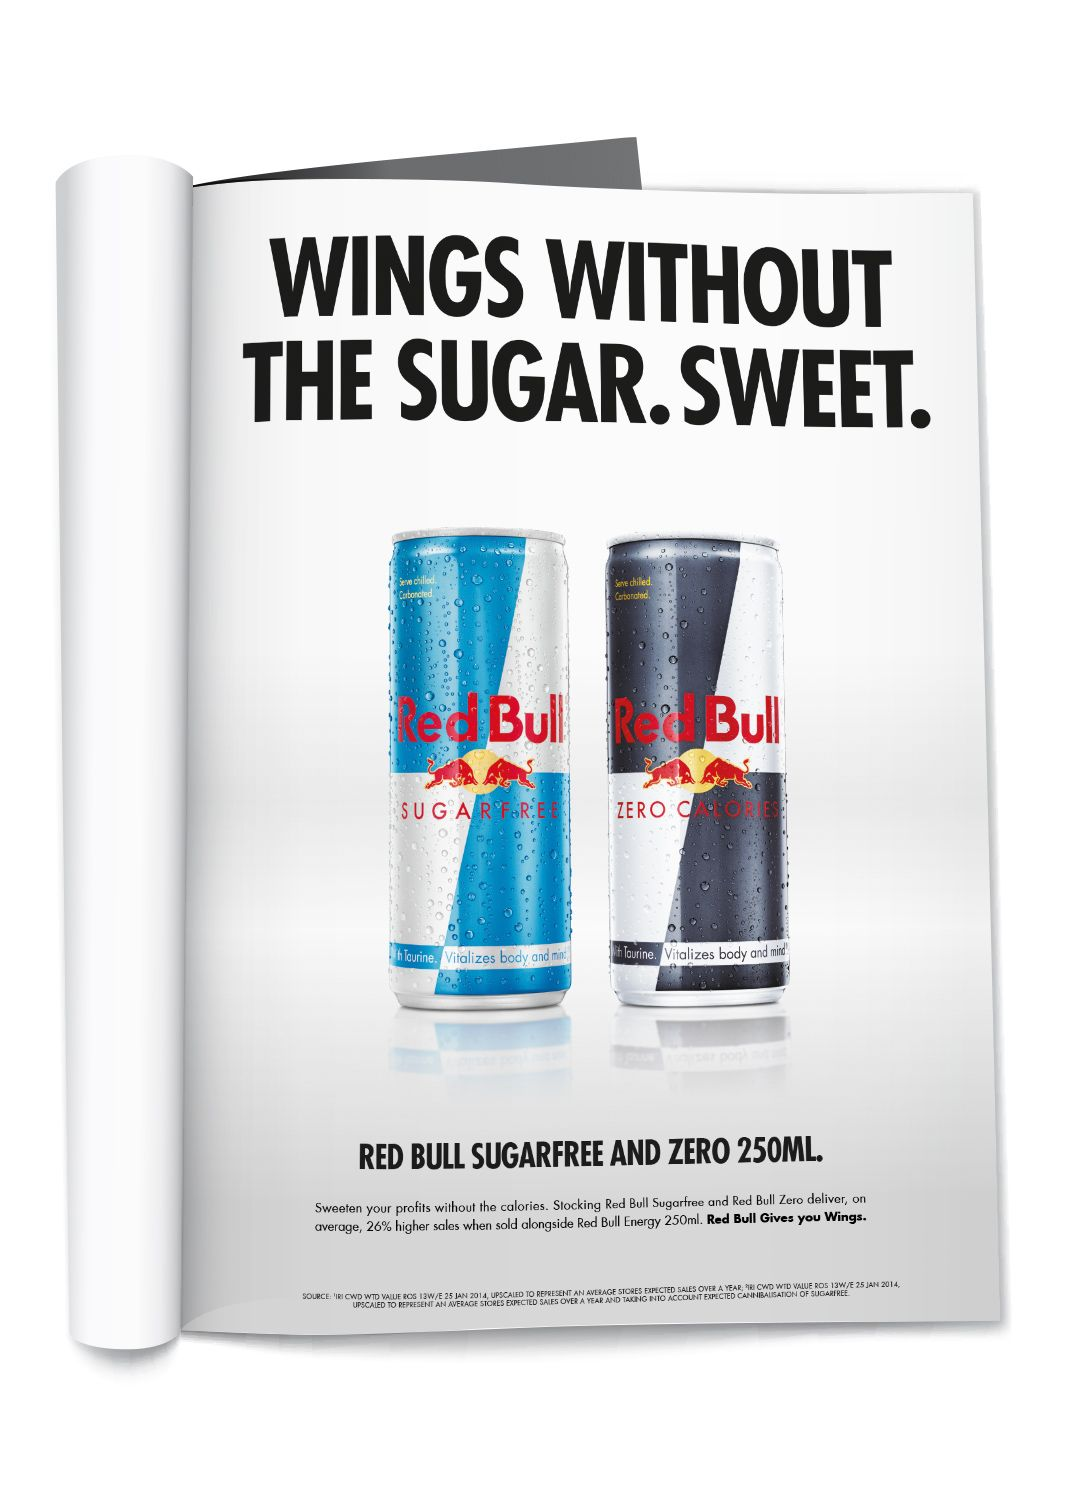 red bull advertising essay What are the red bull's greatest strength and risks as more companies (like coca –cola and pepsi, and monster) enter the energy drinks and gain market share red bull founded in austria in 1992 by the dietrich mateschitz and he introduced in hungary.